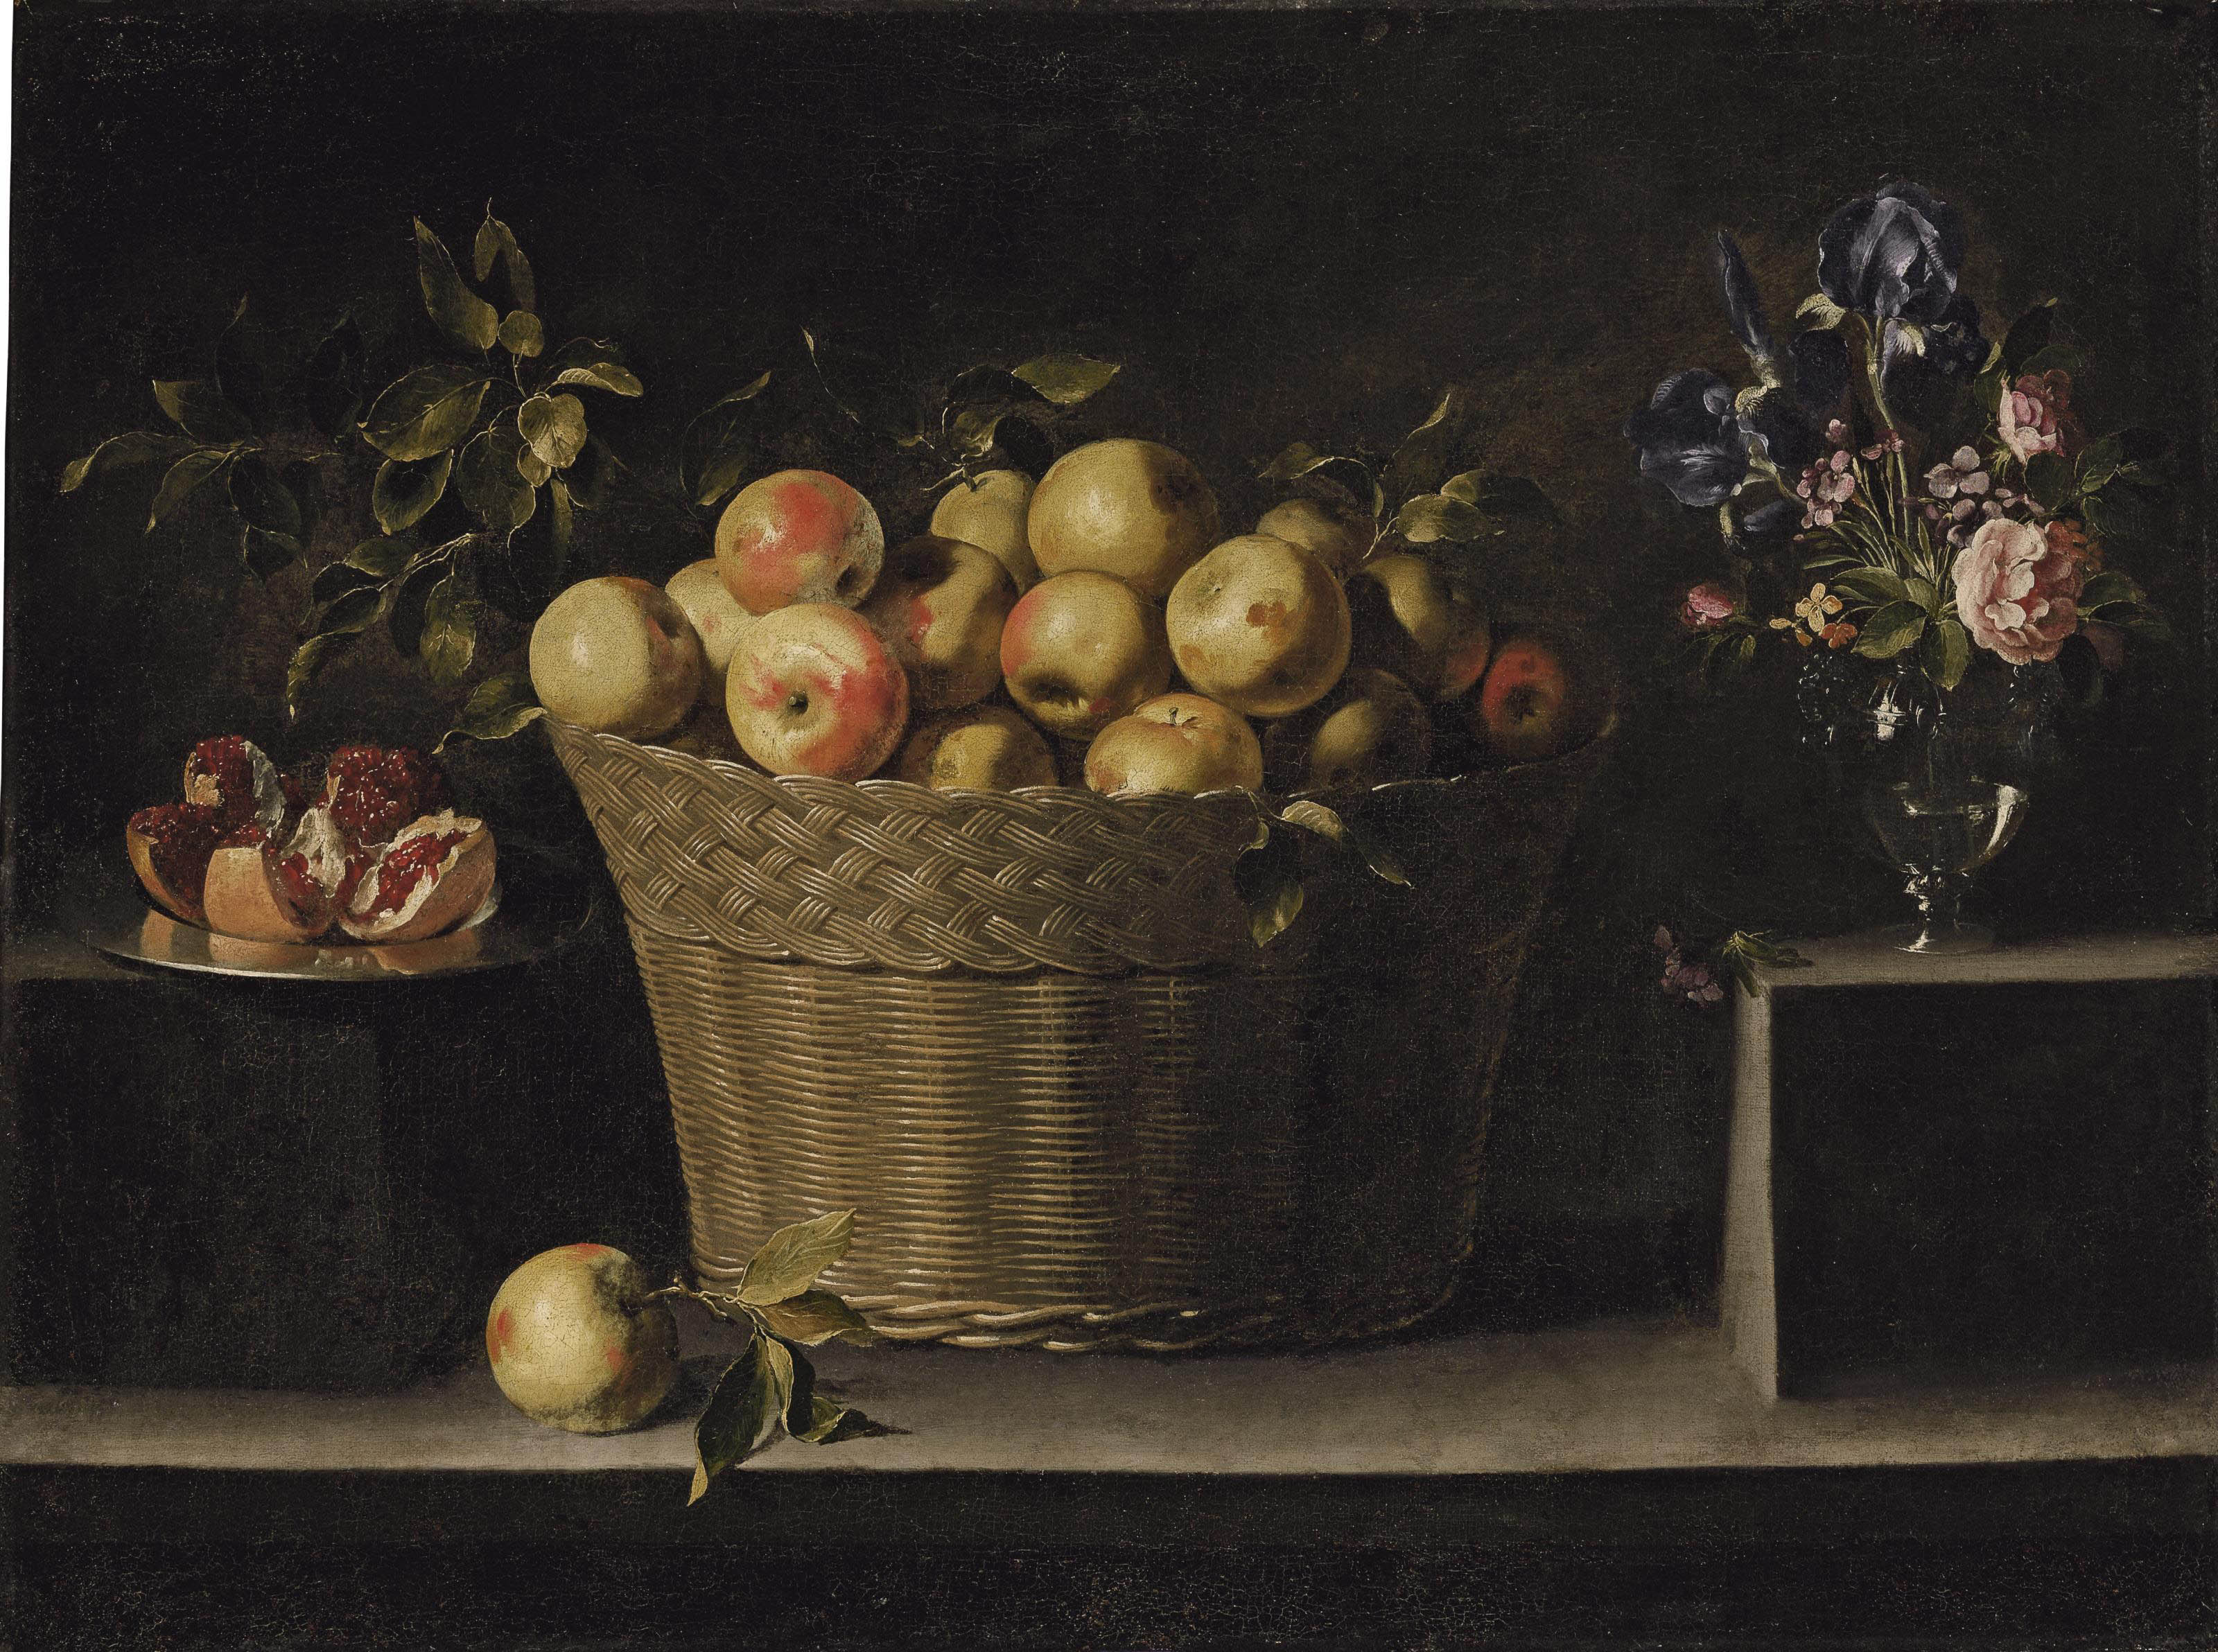 Apples in a wicker basket, an opened pomegranate on a silver plate and roses, irises and other flowers in a glass vase, on a stone ledge